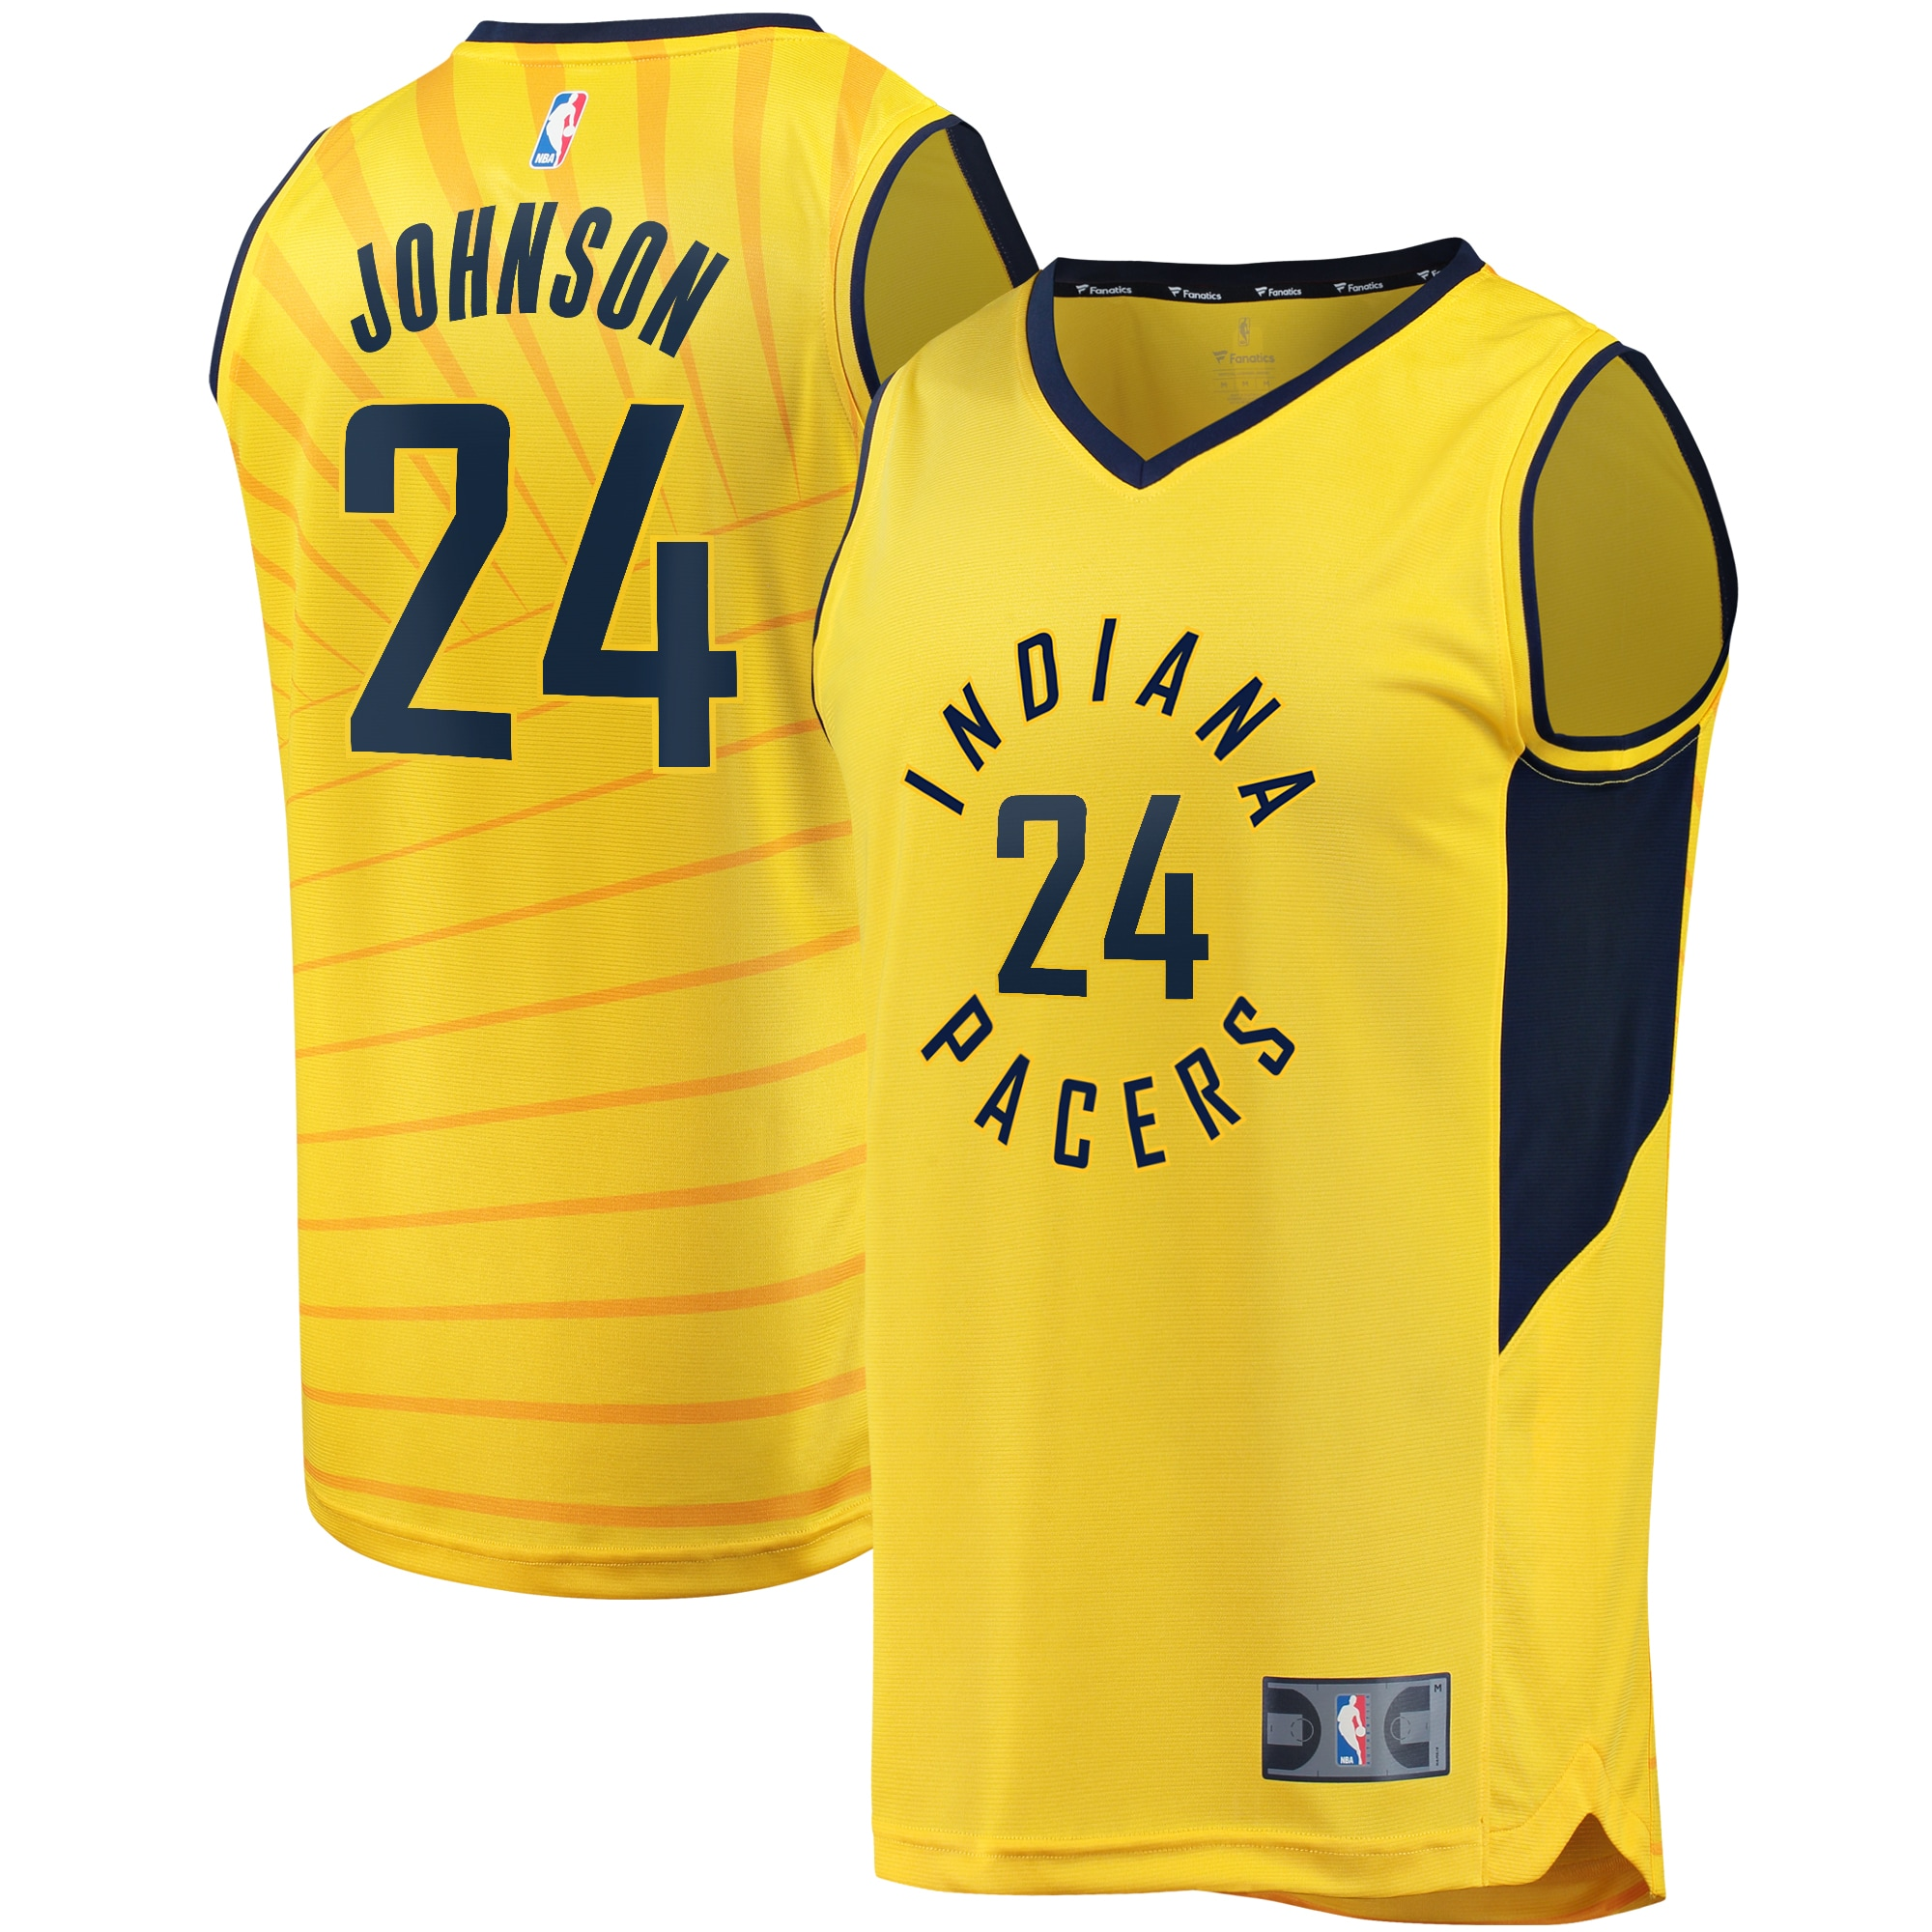 Alize Johnson Indiana Pacers Fanatics Branded Fast Break Player Replica Jersey - Statement Edition - Gold